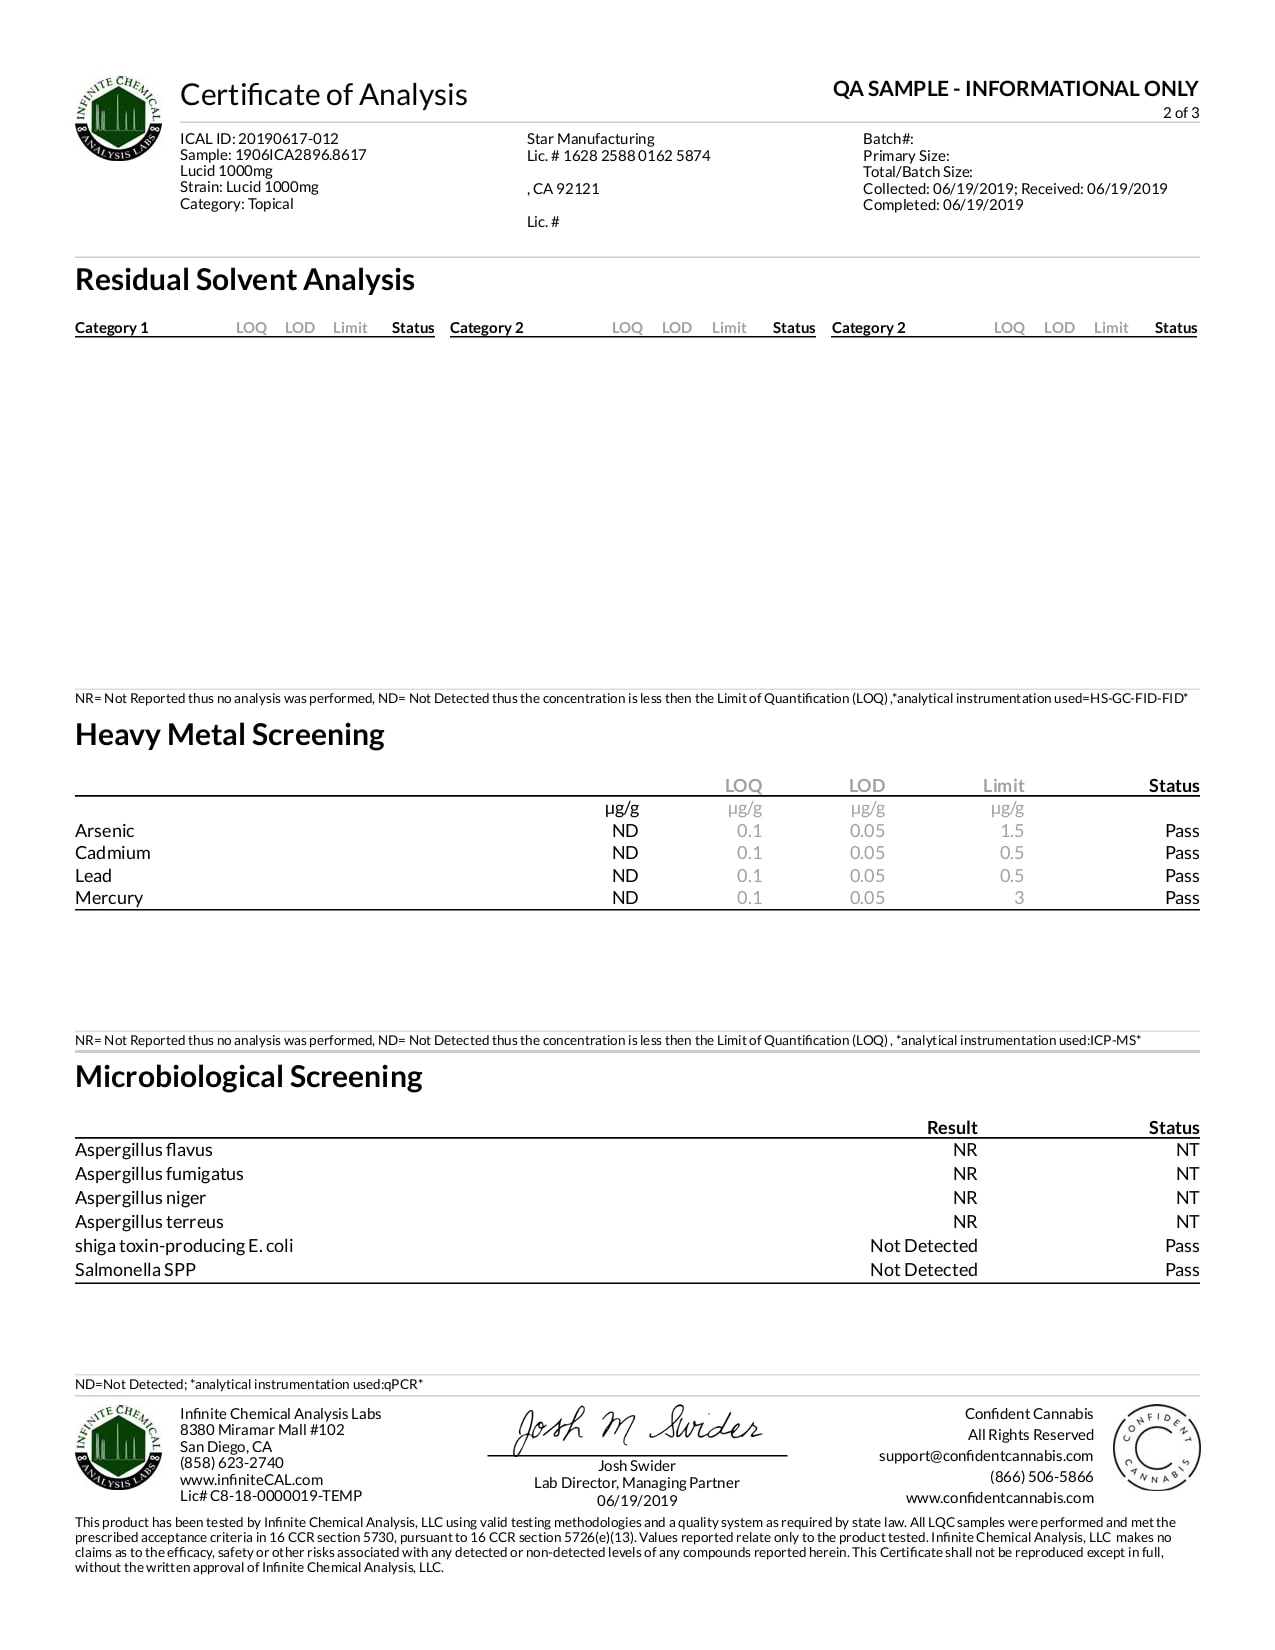 IGNITE CBD Essential Oil Roll-on Unscented 1000mg Lab Report